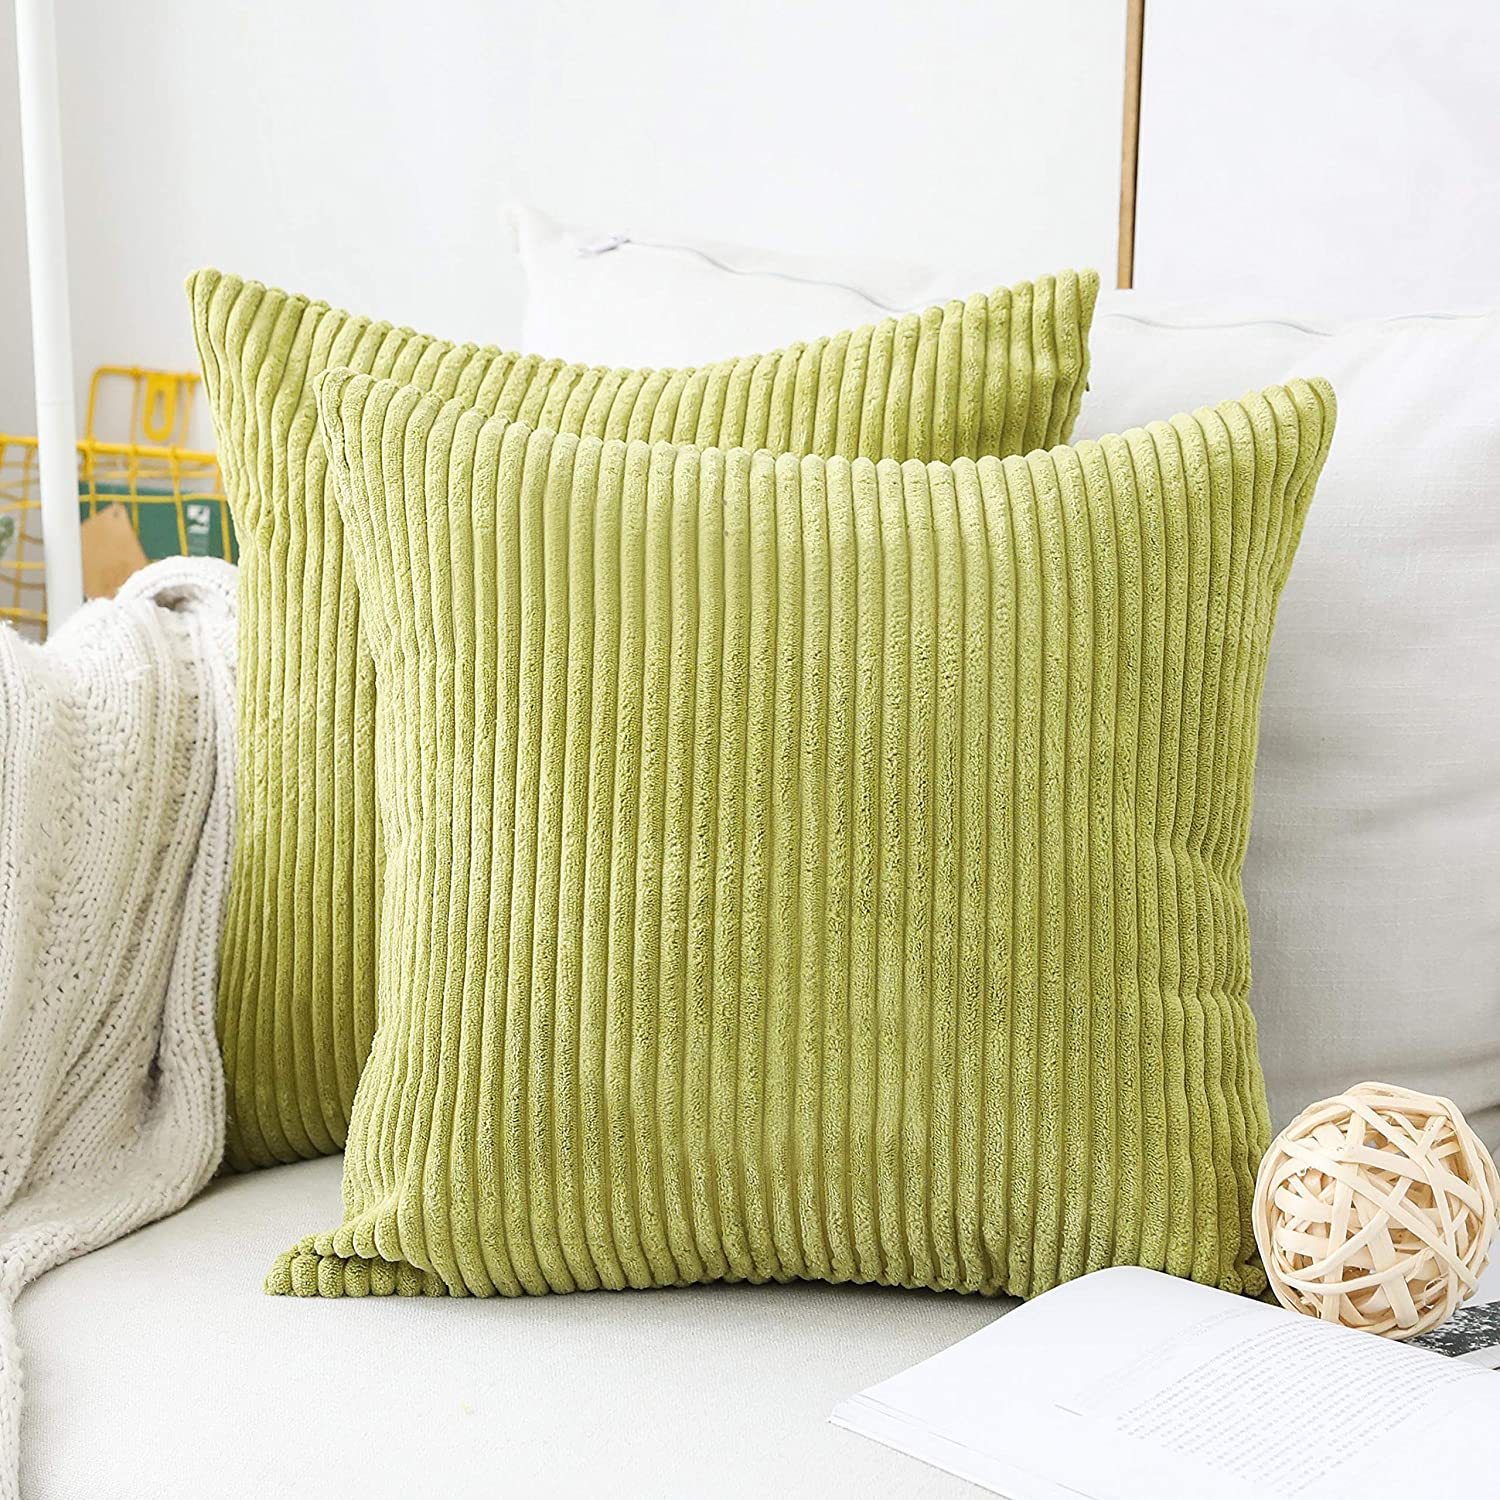 Home Brilliant Set of 2 Striped Textured Velvet Corduroy Decorative Europe Sham Throw Pillow Cushion Cover for Couch, (66x66 cm, 26inch), Grass Green